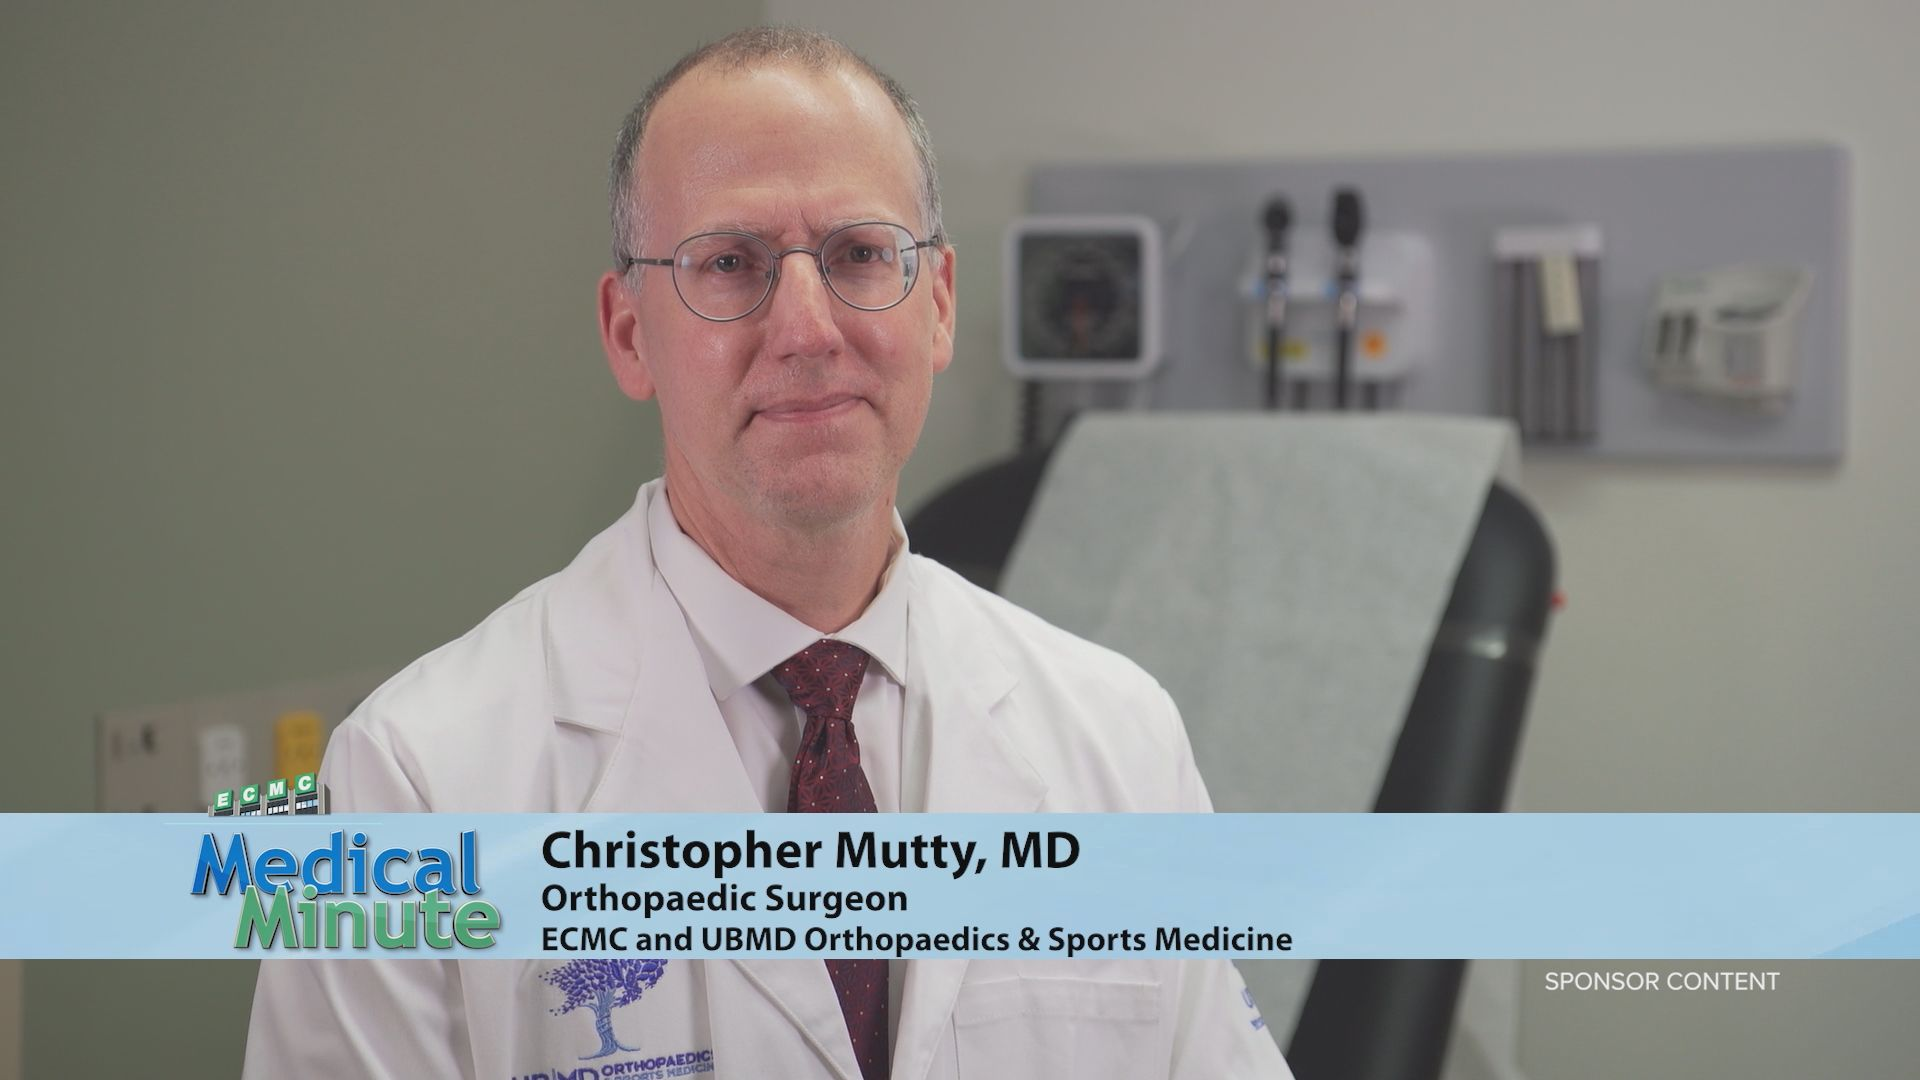 ECMC Medical Minute - Dr. Christopher Mutty - Fracture Care 08:02:21 STILL